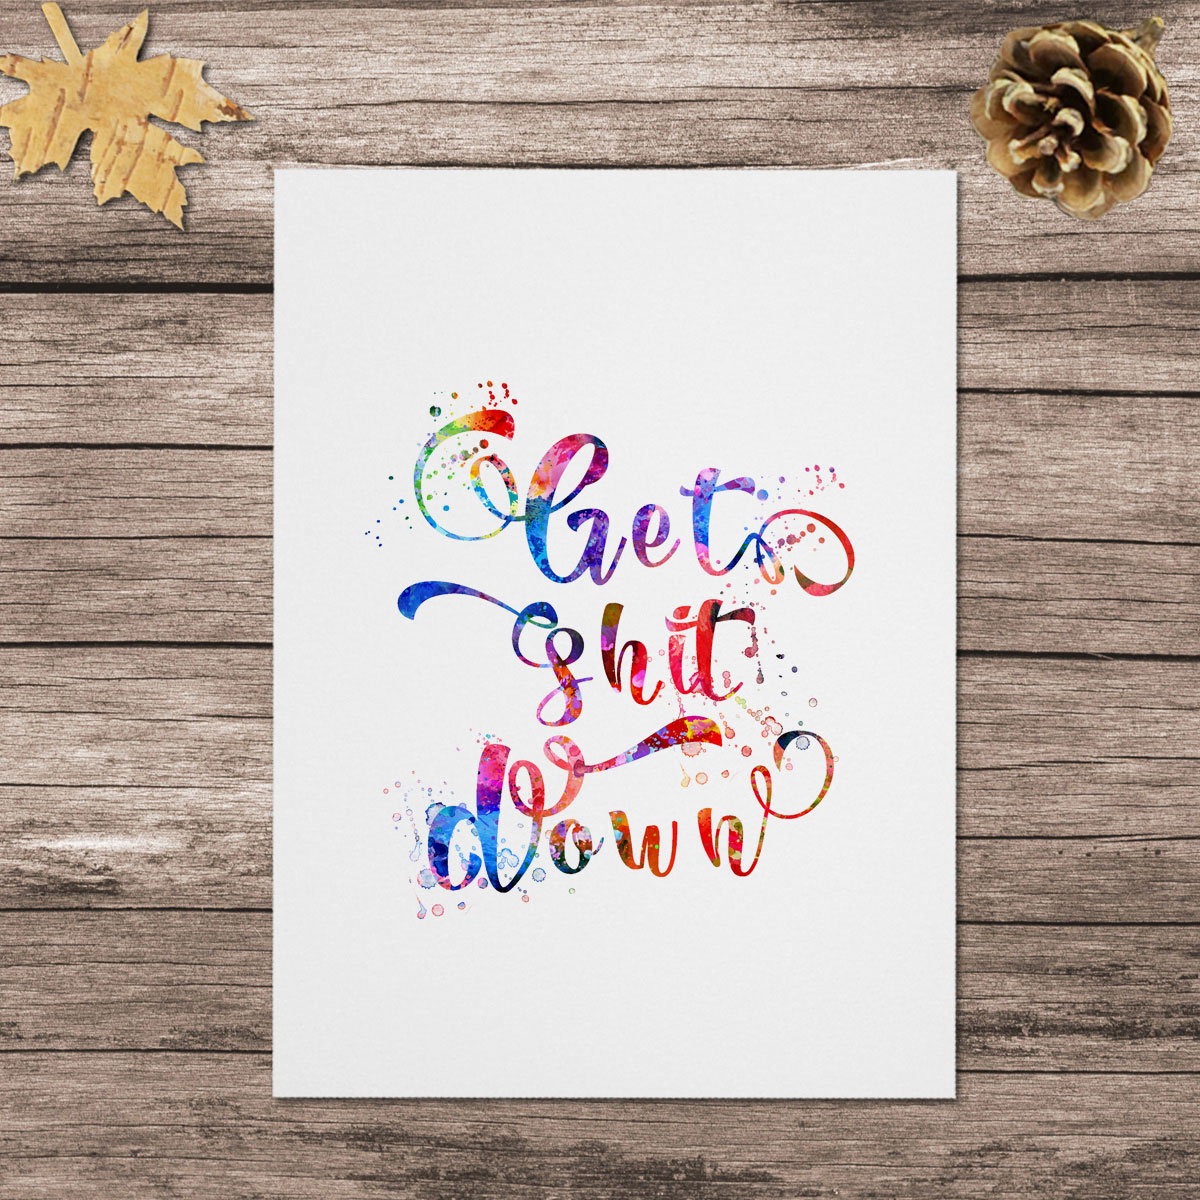 Get Shit Down Quotes Wall Art Watercolor Painting Nusery Decor Funny